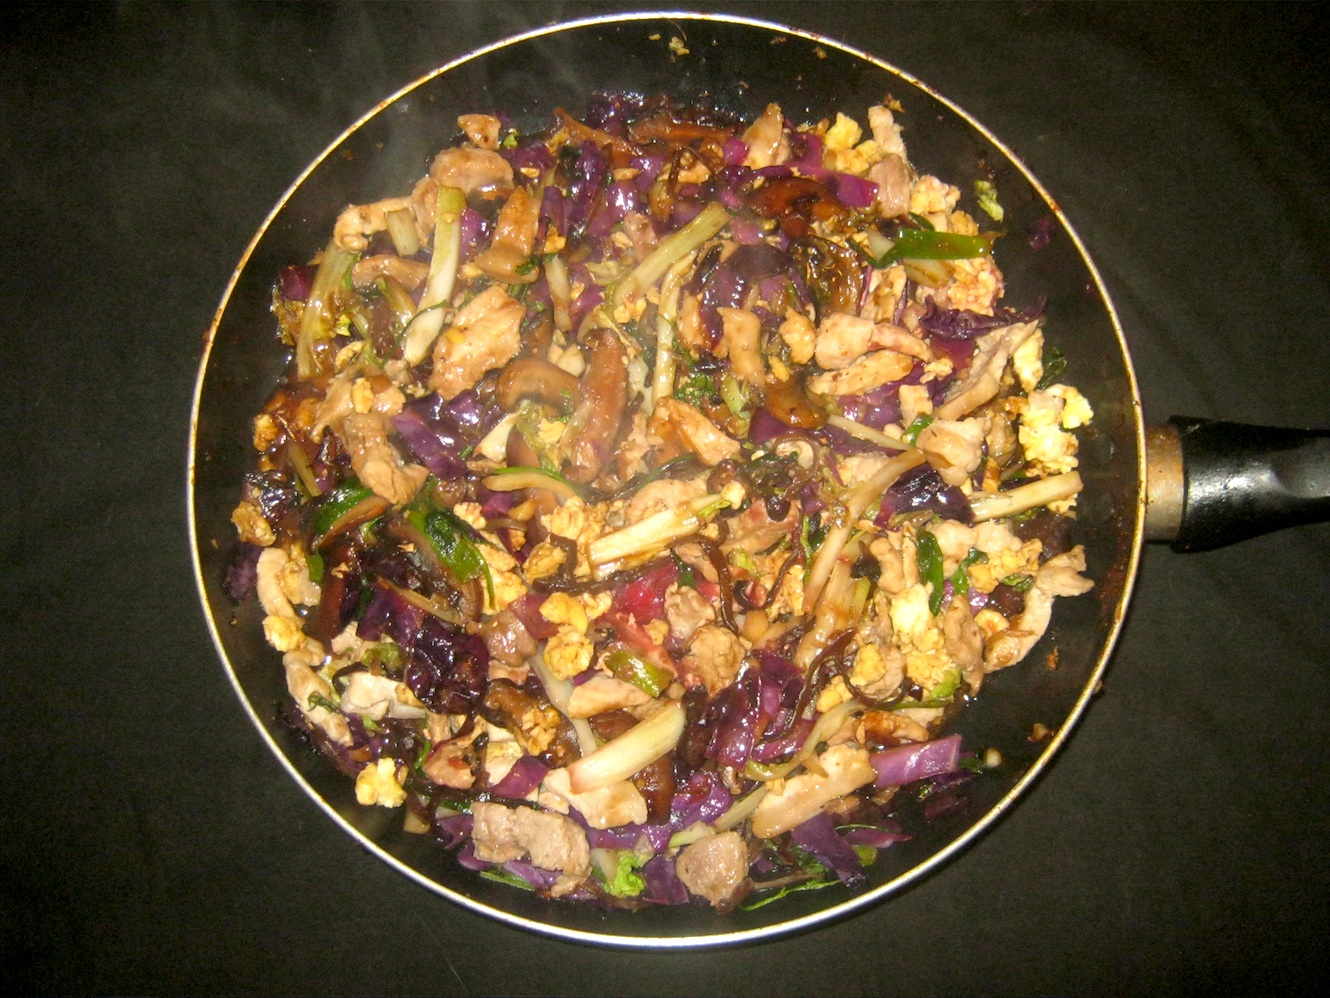 Colorful Moo Shu Pork in a skillet